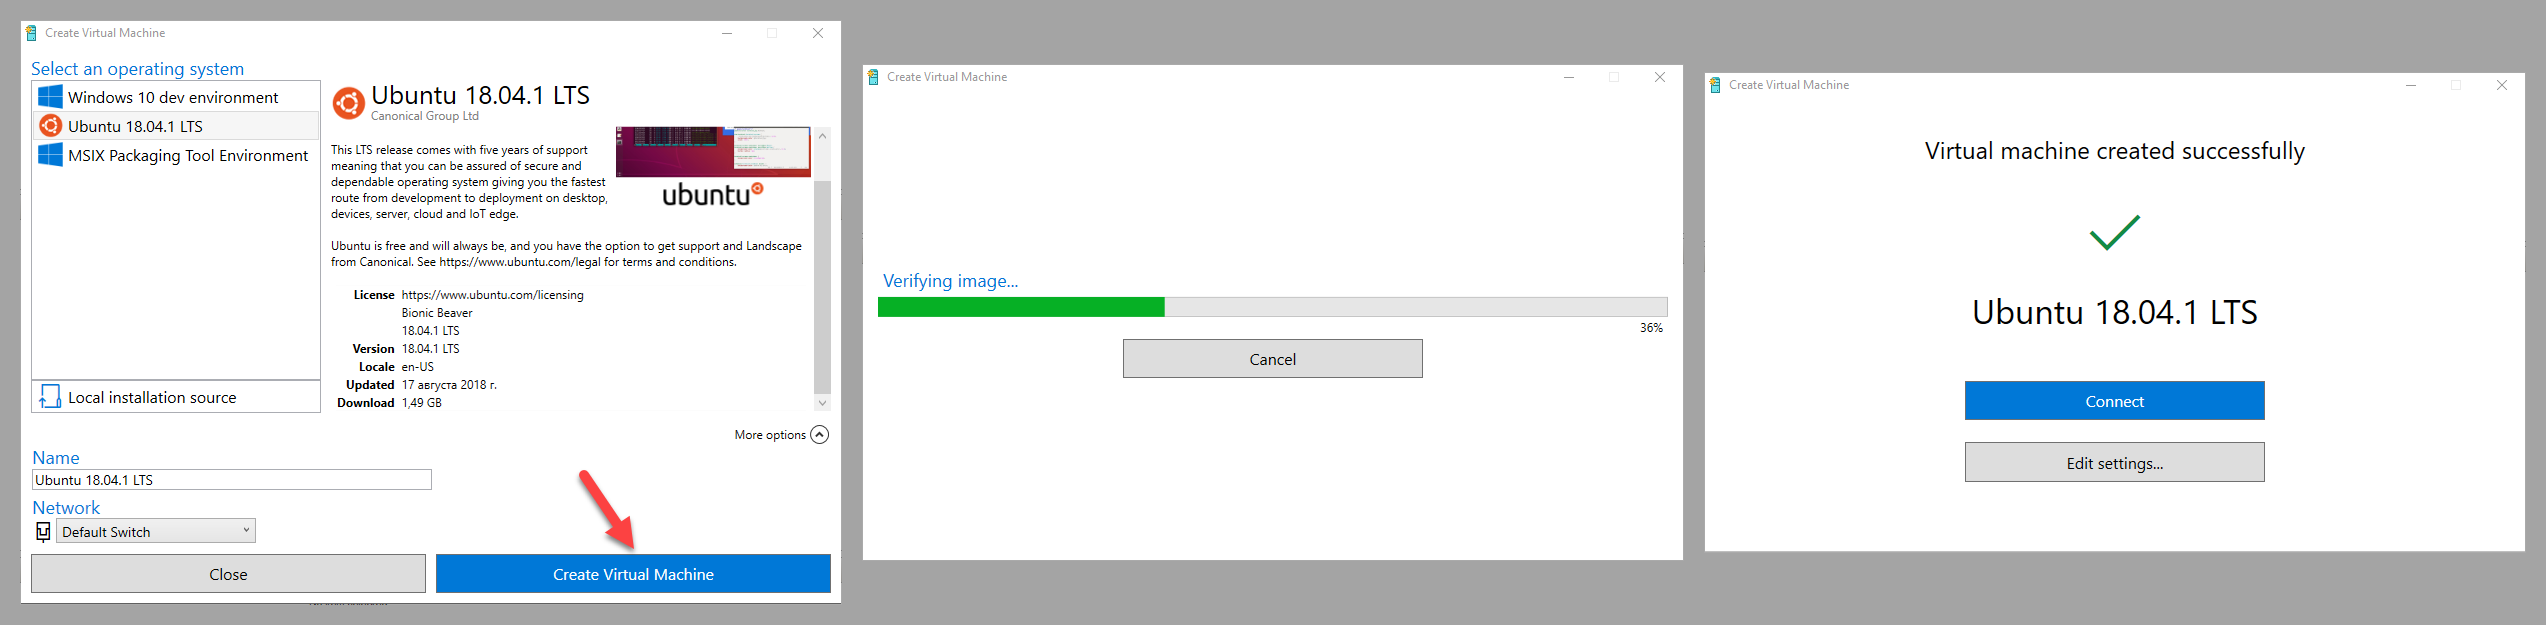 A quick test can get you up and running with Ubuntu Hyper-V VM just in a few clicks